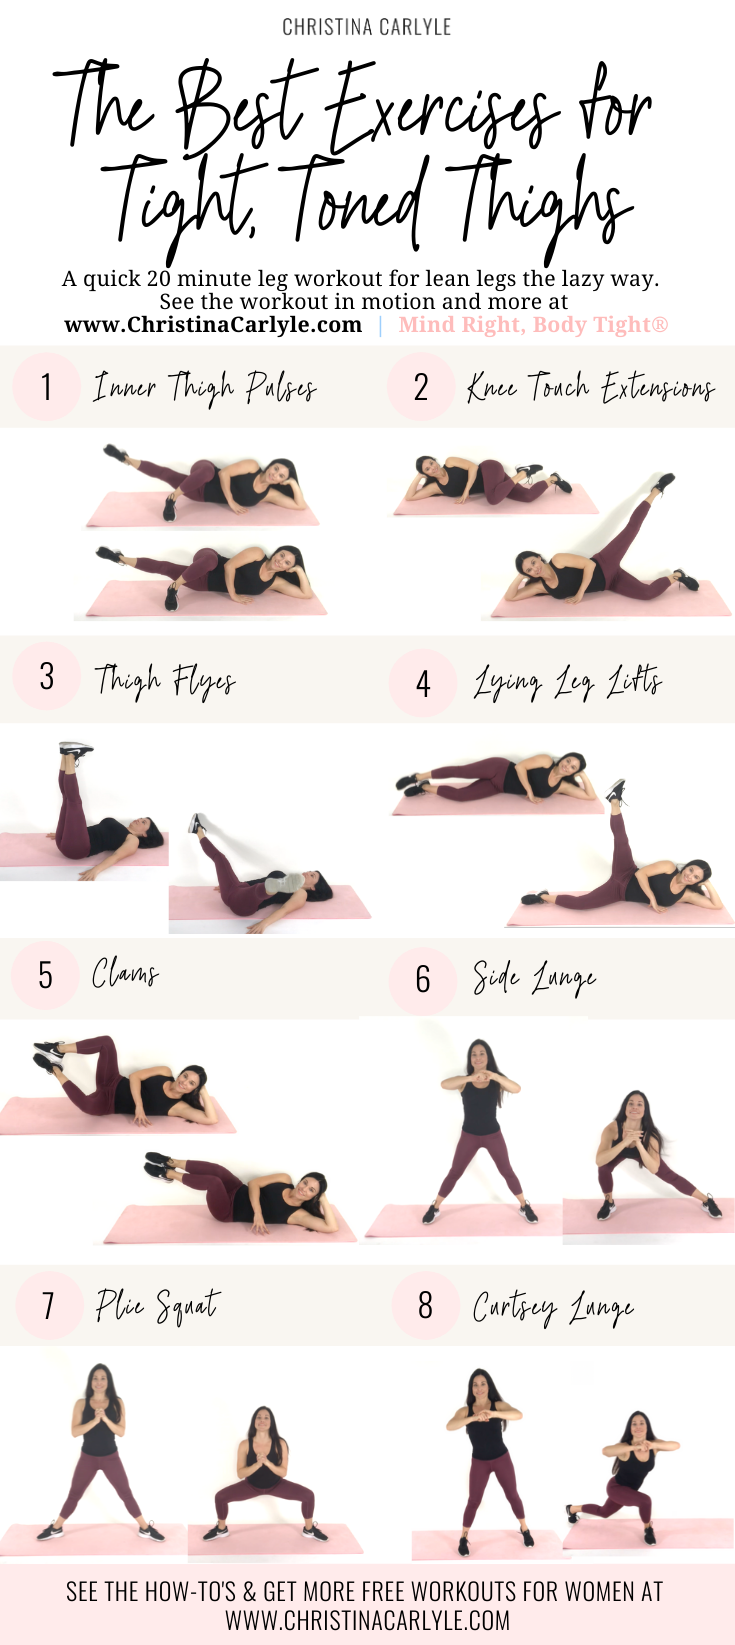 Thigh Exercises for toned, slim inner and outer thighs